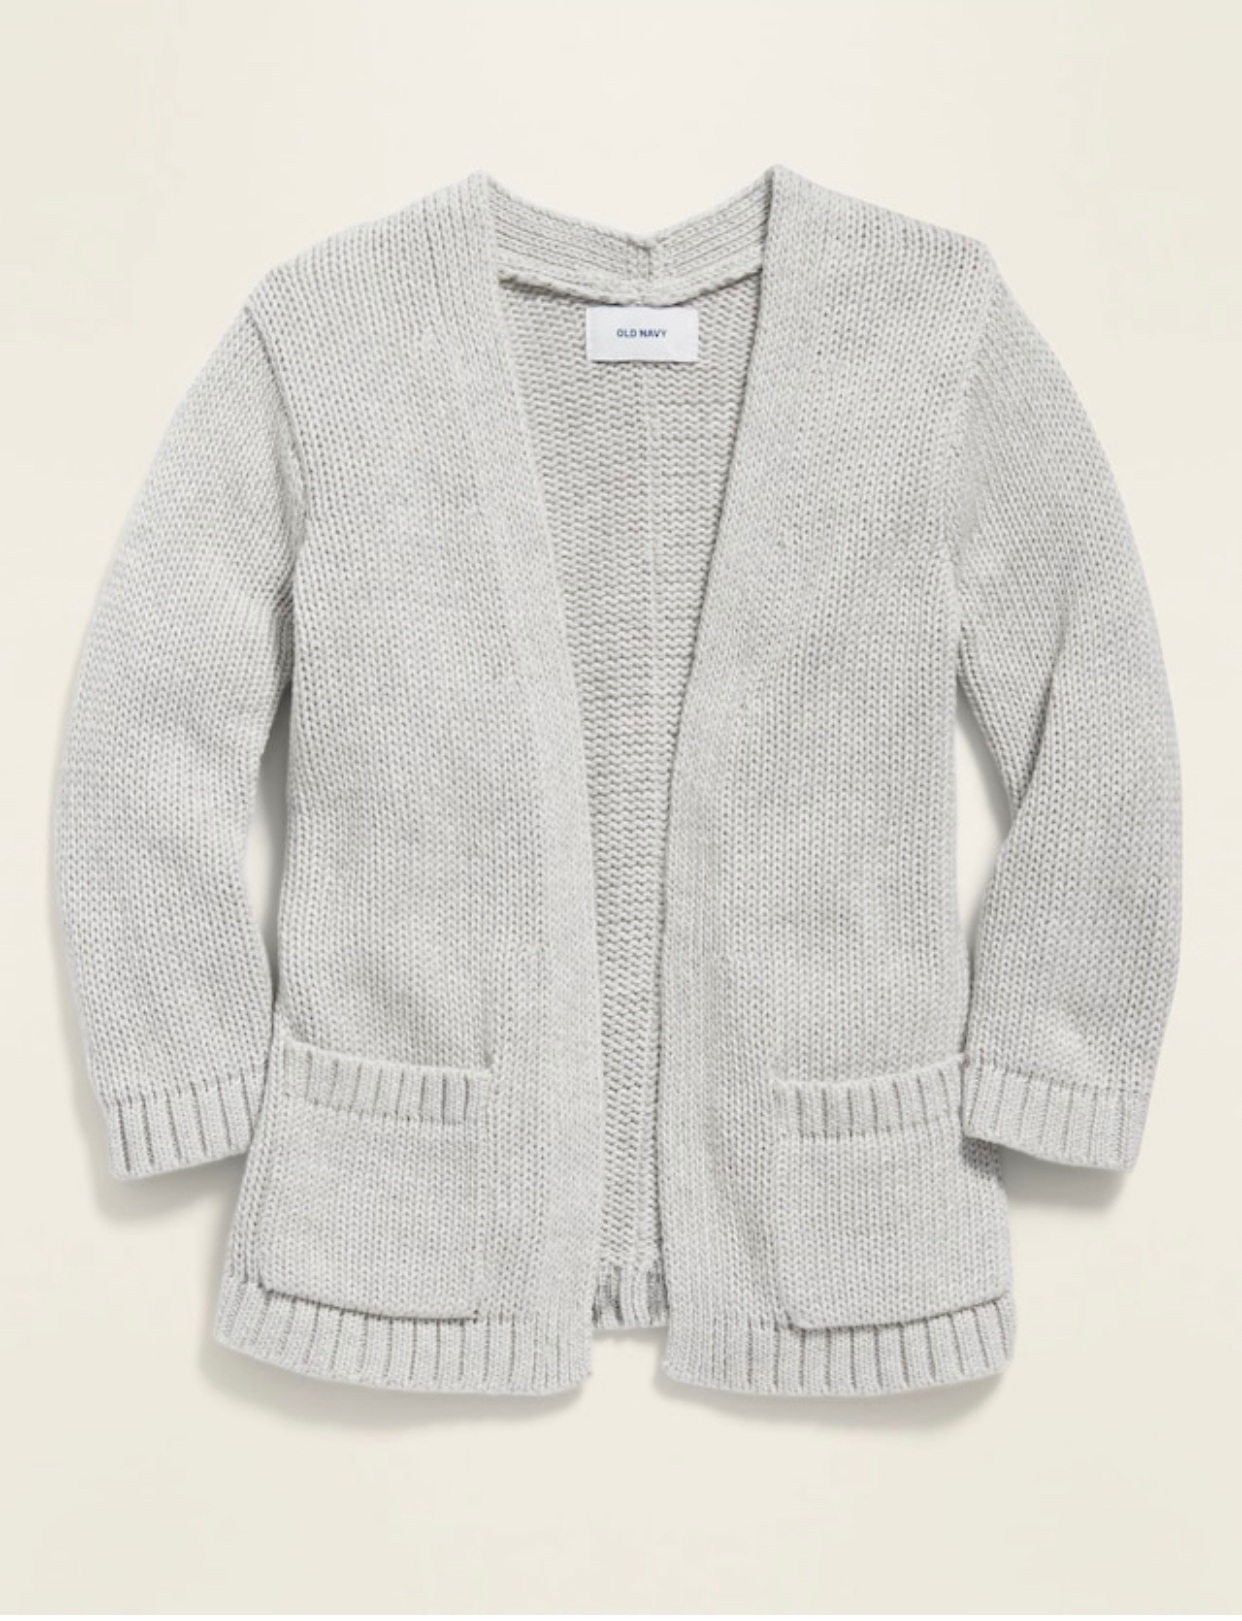 - Caroline wore this exact cardigan almost every day last fall and winter so I bought her another one in her new size for this upcoming cold season.Find it here.